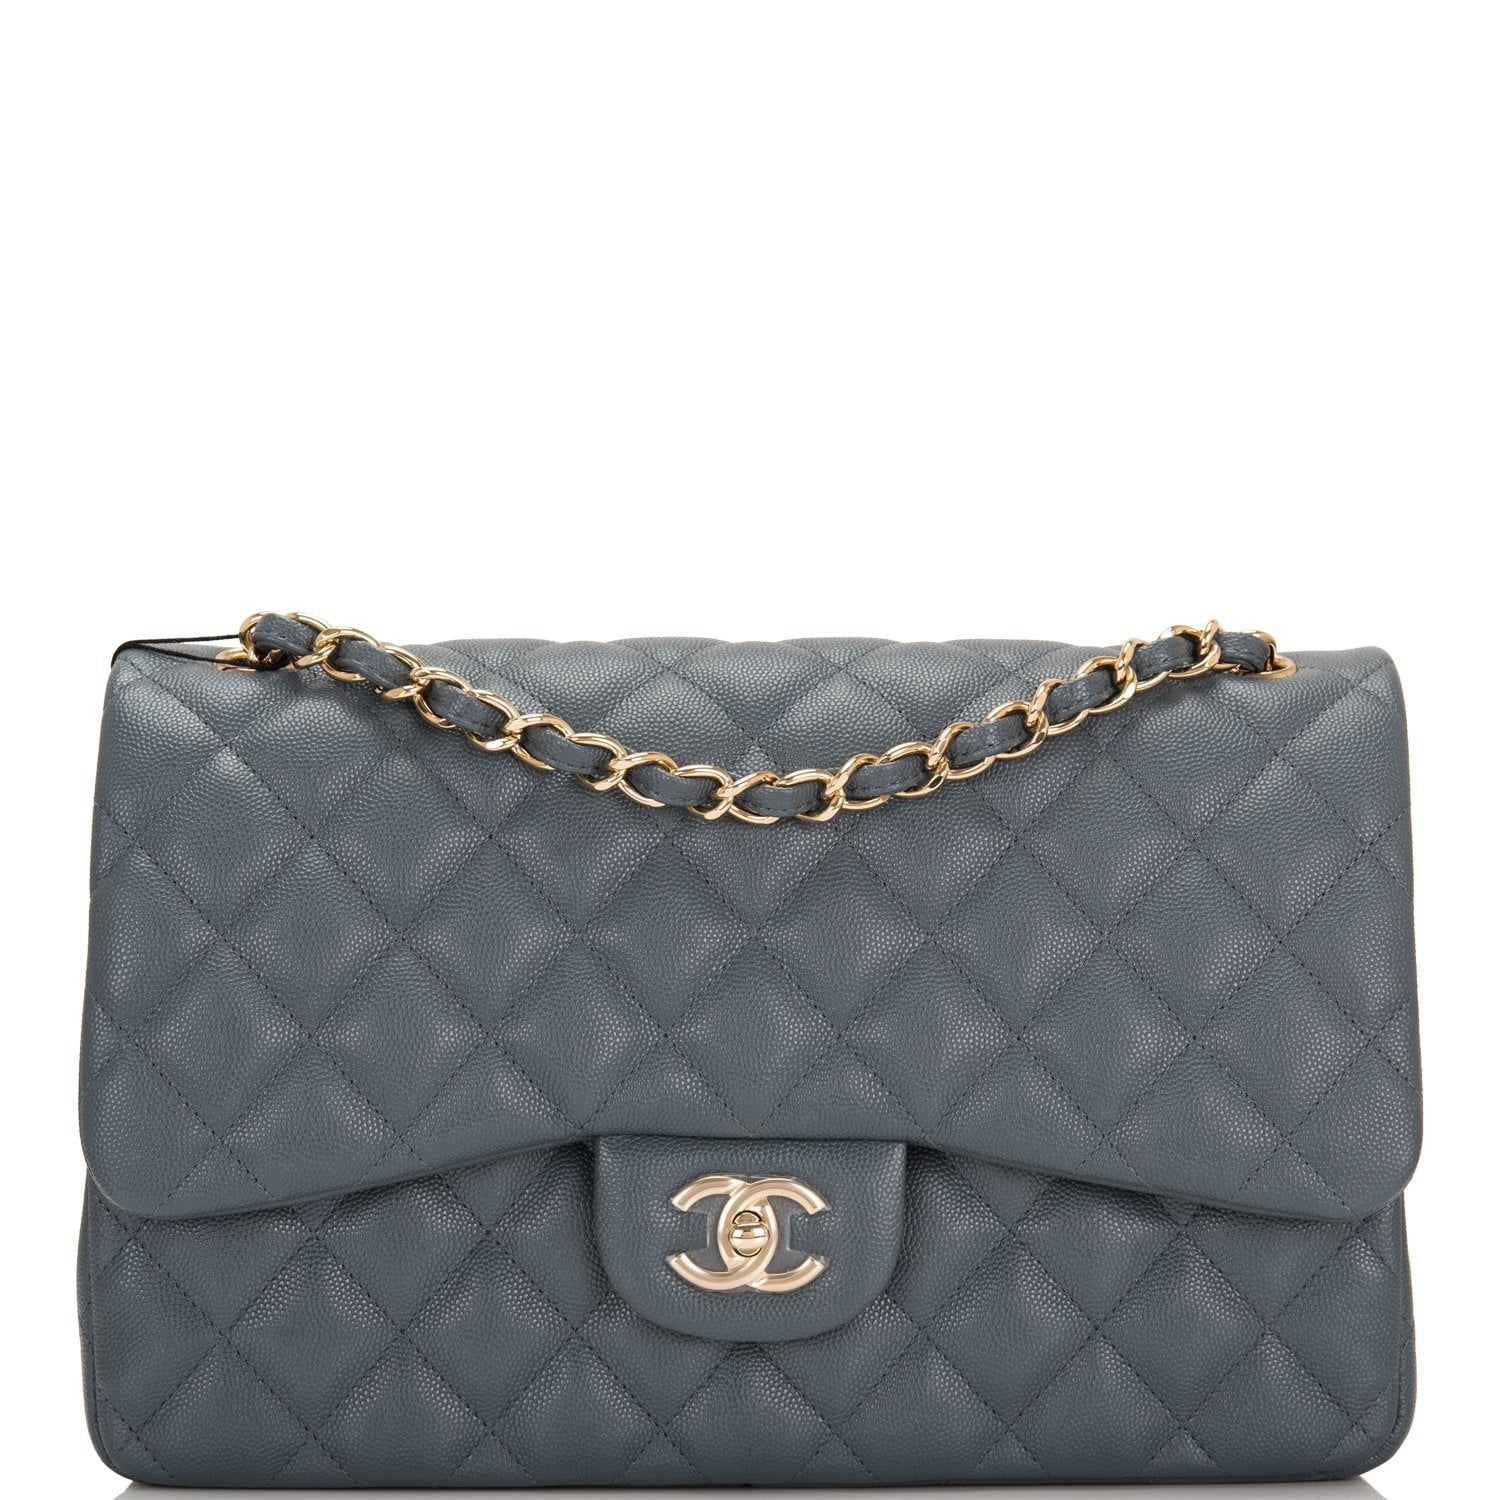 e96dcdcd726a41 Chanel Slate Grey Quilted Caviar Jumbo Classic Double Flap Bag ...